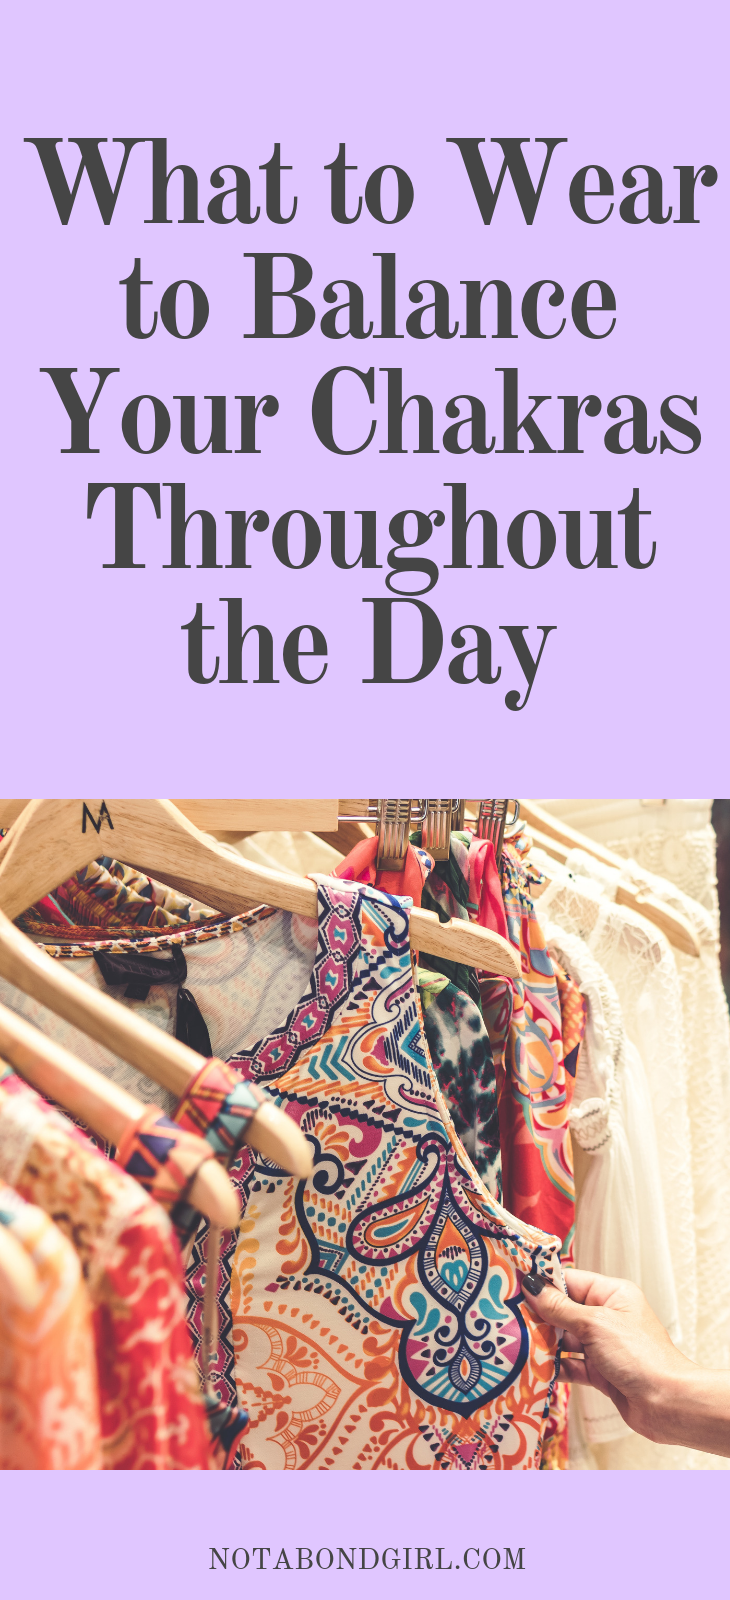 What to Wear to Clear Your Chakras Throughout the Day; #selfdevelopment #money #wealth #worklife #energyhealing #spirituality #metaphysics #abundance #mindset #personaldevelopment #holisticwellness #wellness #health #fitness #selfcare #selflove #meditation #yoga #mindfulness #moneychakra #holisticwealth #reiki #millennial #loa #spiritual #empath #inspiration #motivation #FIREMovement #financialindependenceretireearly #girlboss #entrepreneur #highvibe #lifestyle